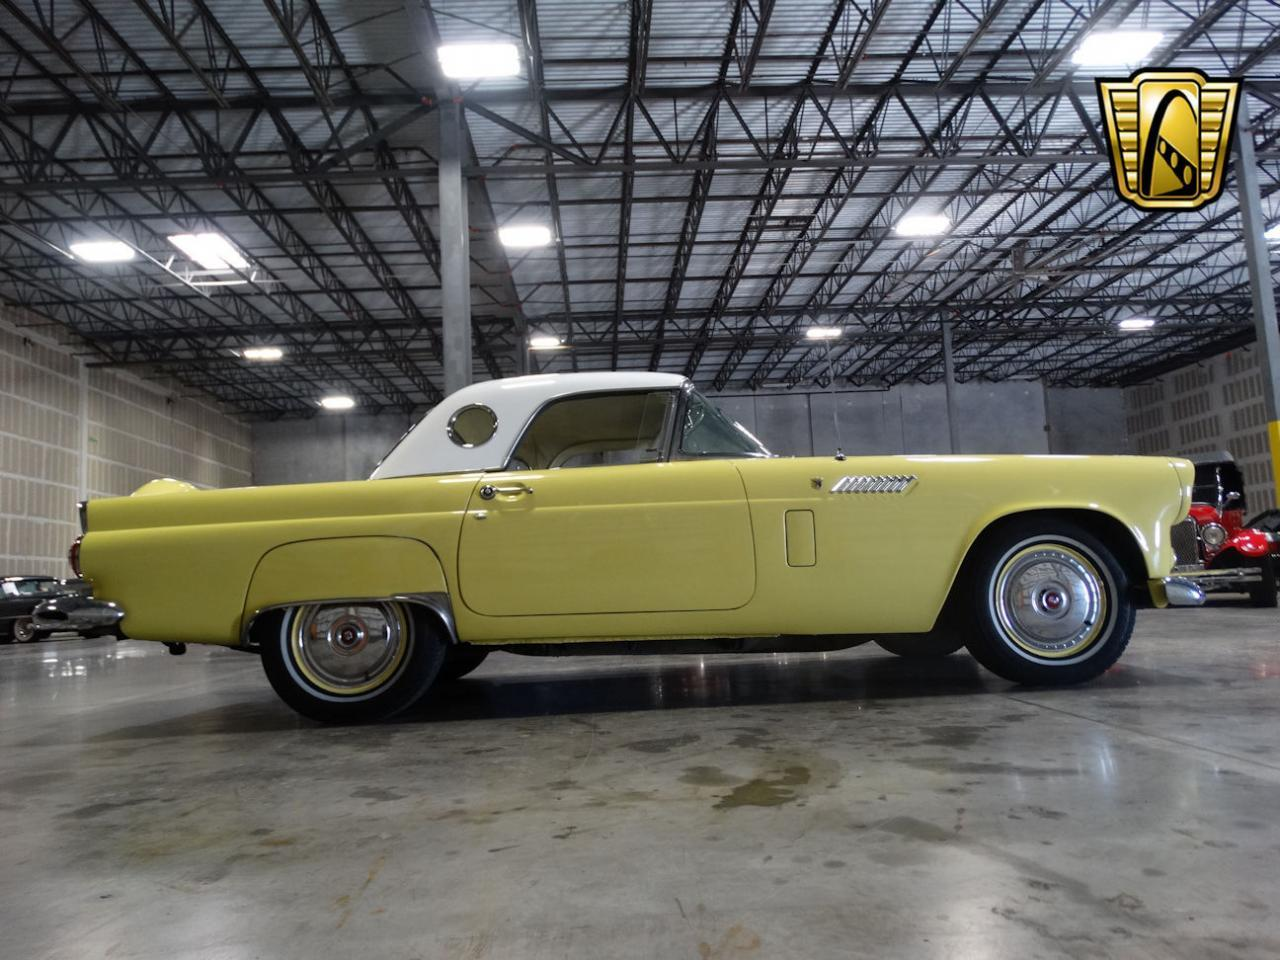 Large Picture of 1956 Ford Thunderbird located in Florida - $36,995.00 - L91T